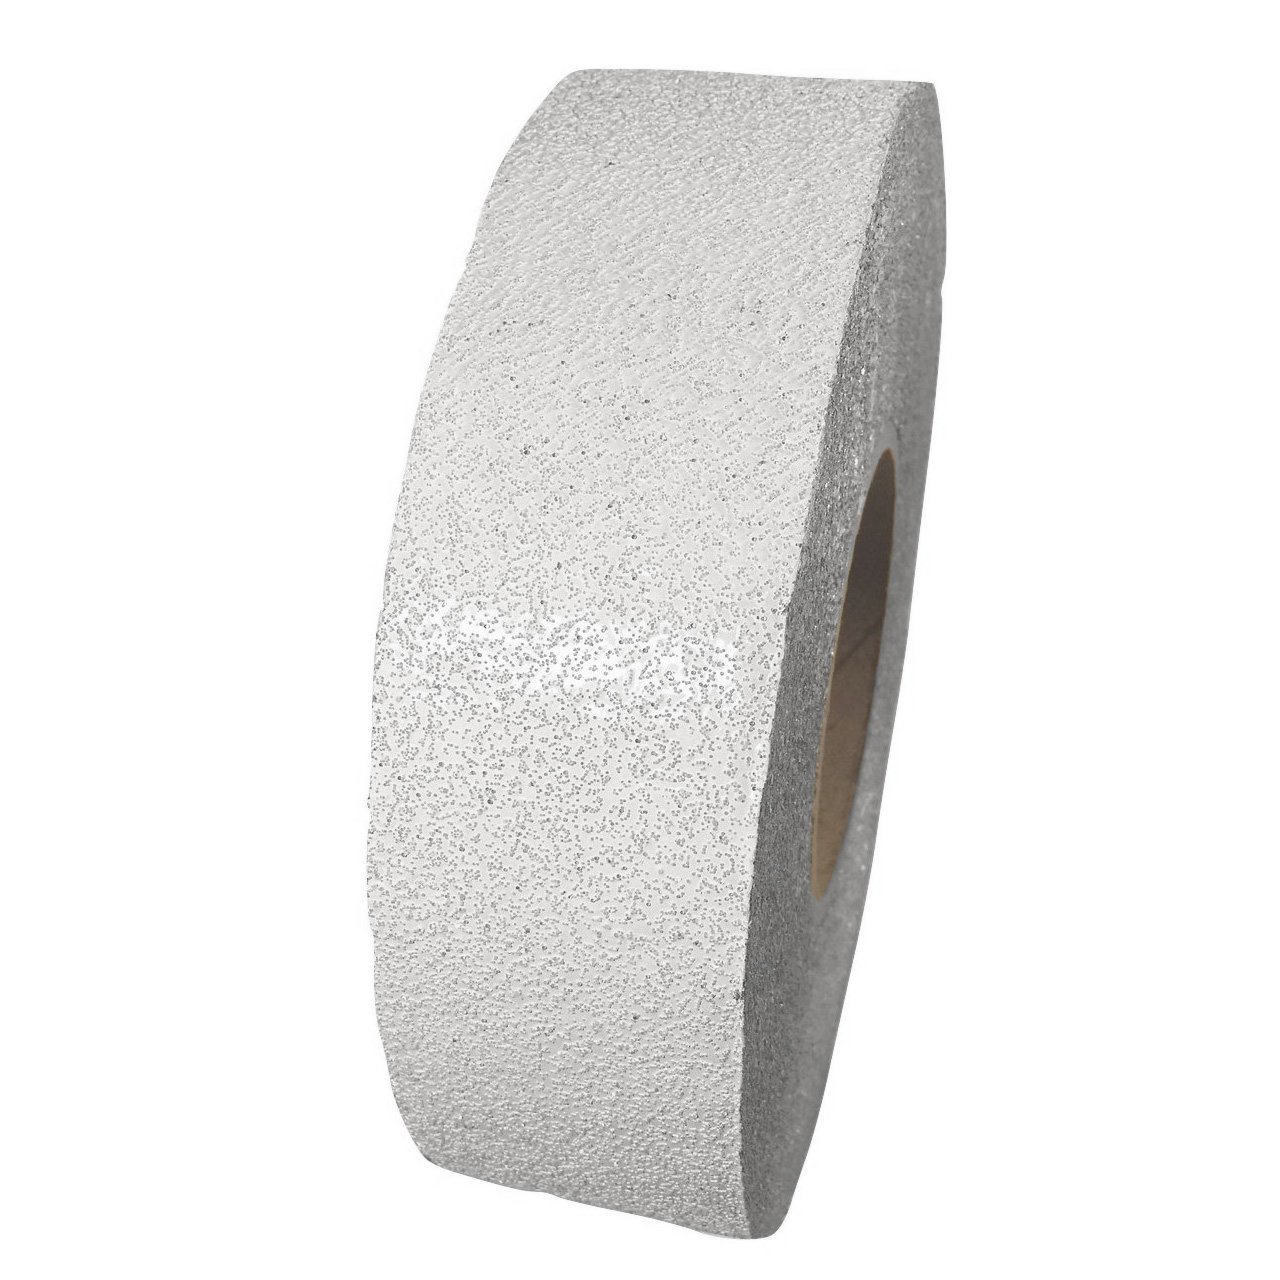 ifloortape White Reflective Foil Pavement Marking Tape Conforms to Asphalt Concrete Surface 2 Inch x 150 Foot Roll